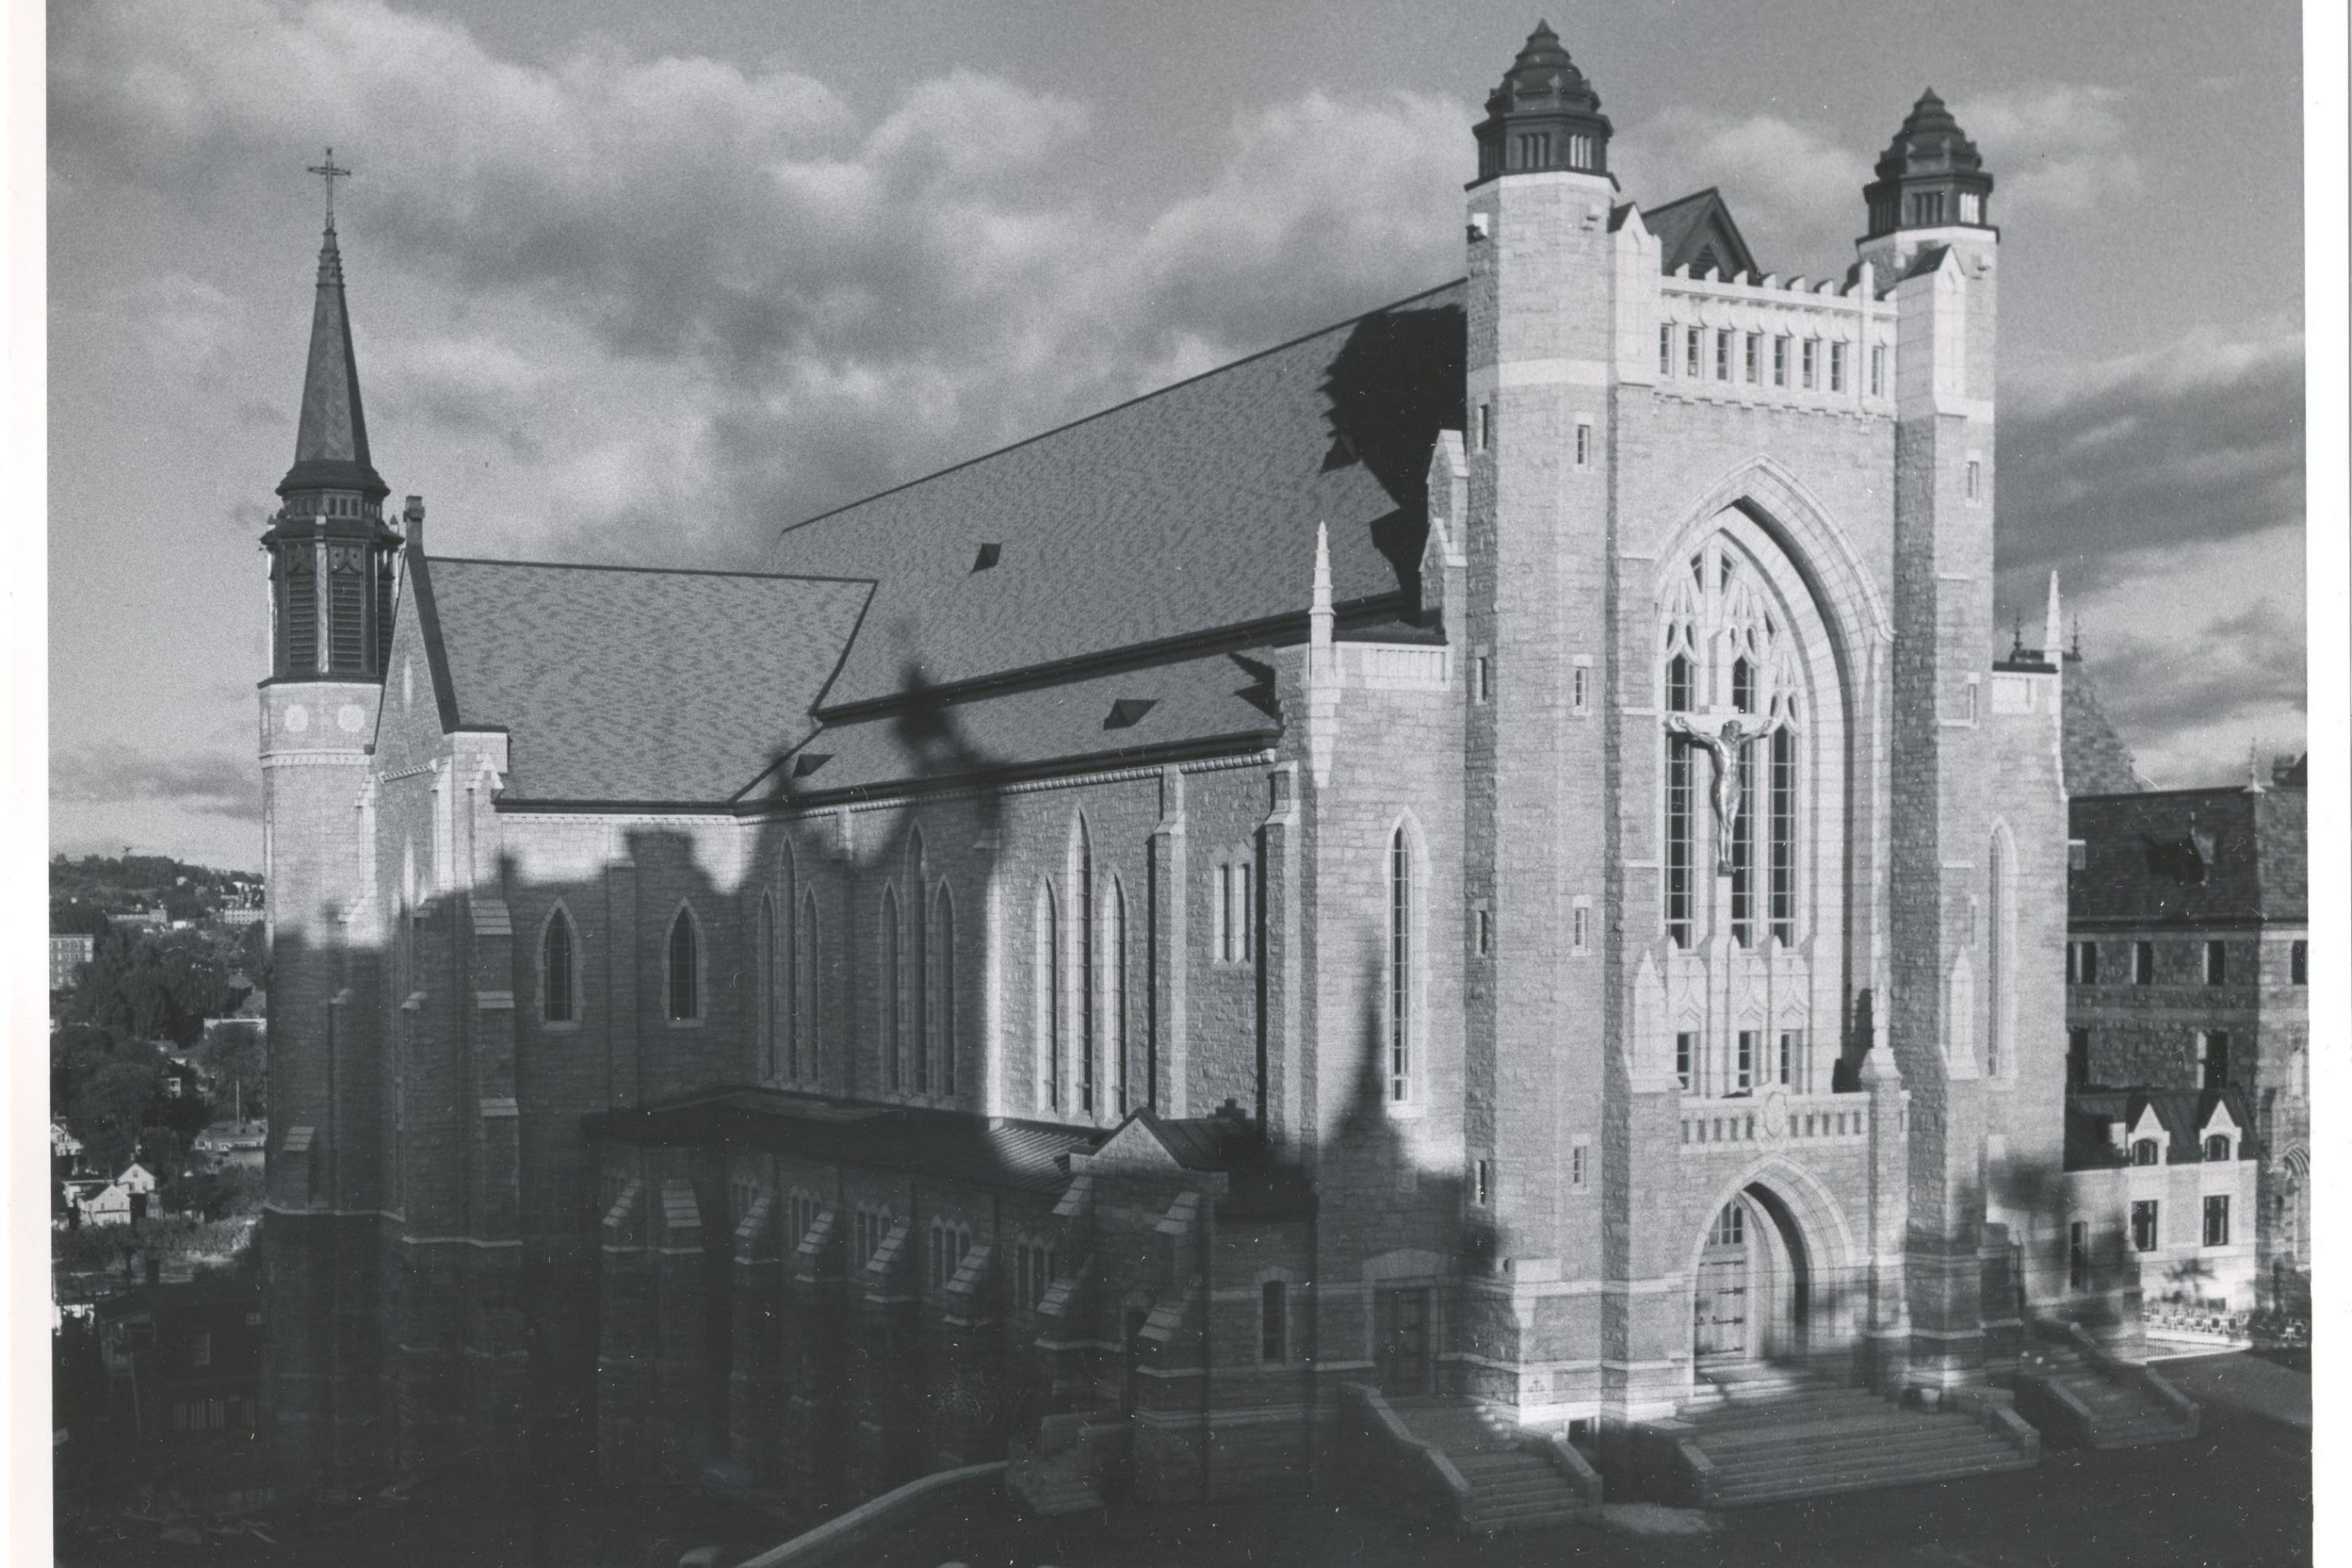 Cathédrale Saint-Michel circa 1950